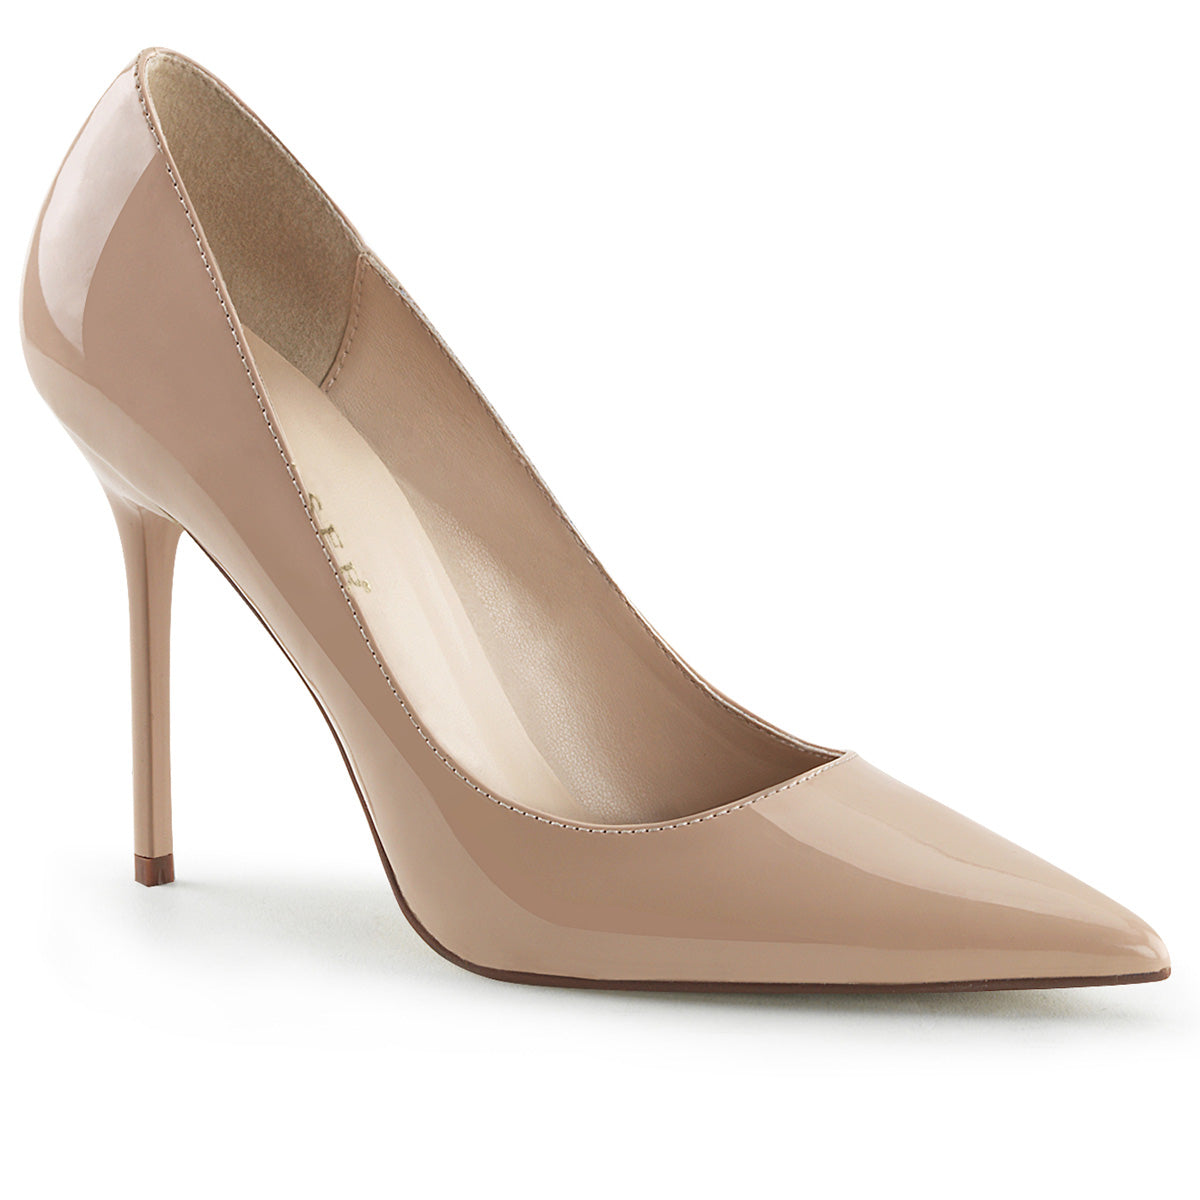 "4"" Pointed-Toe Pump"